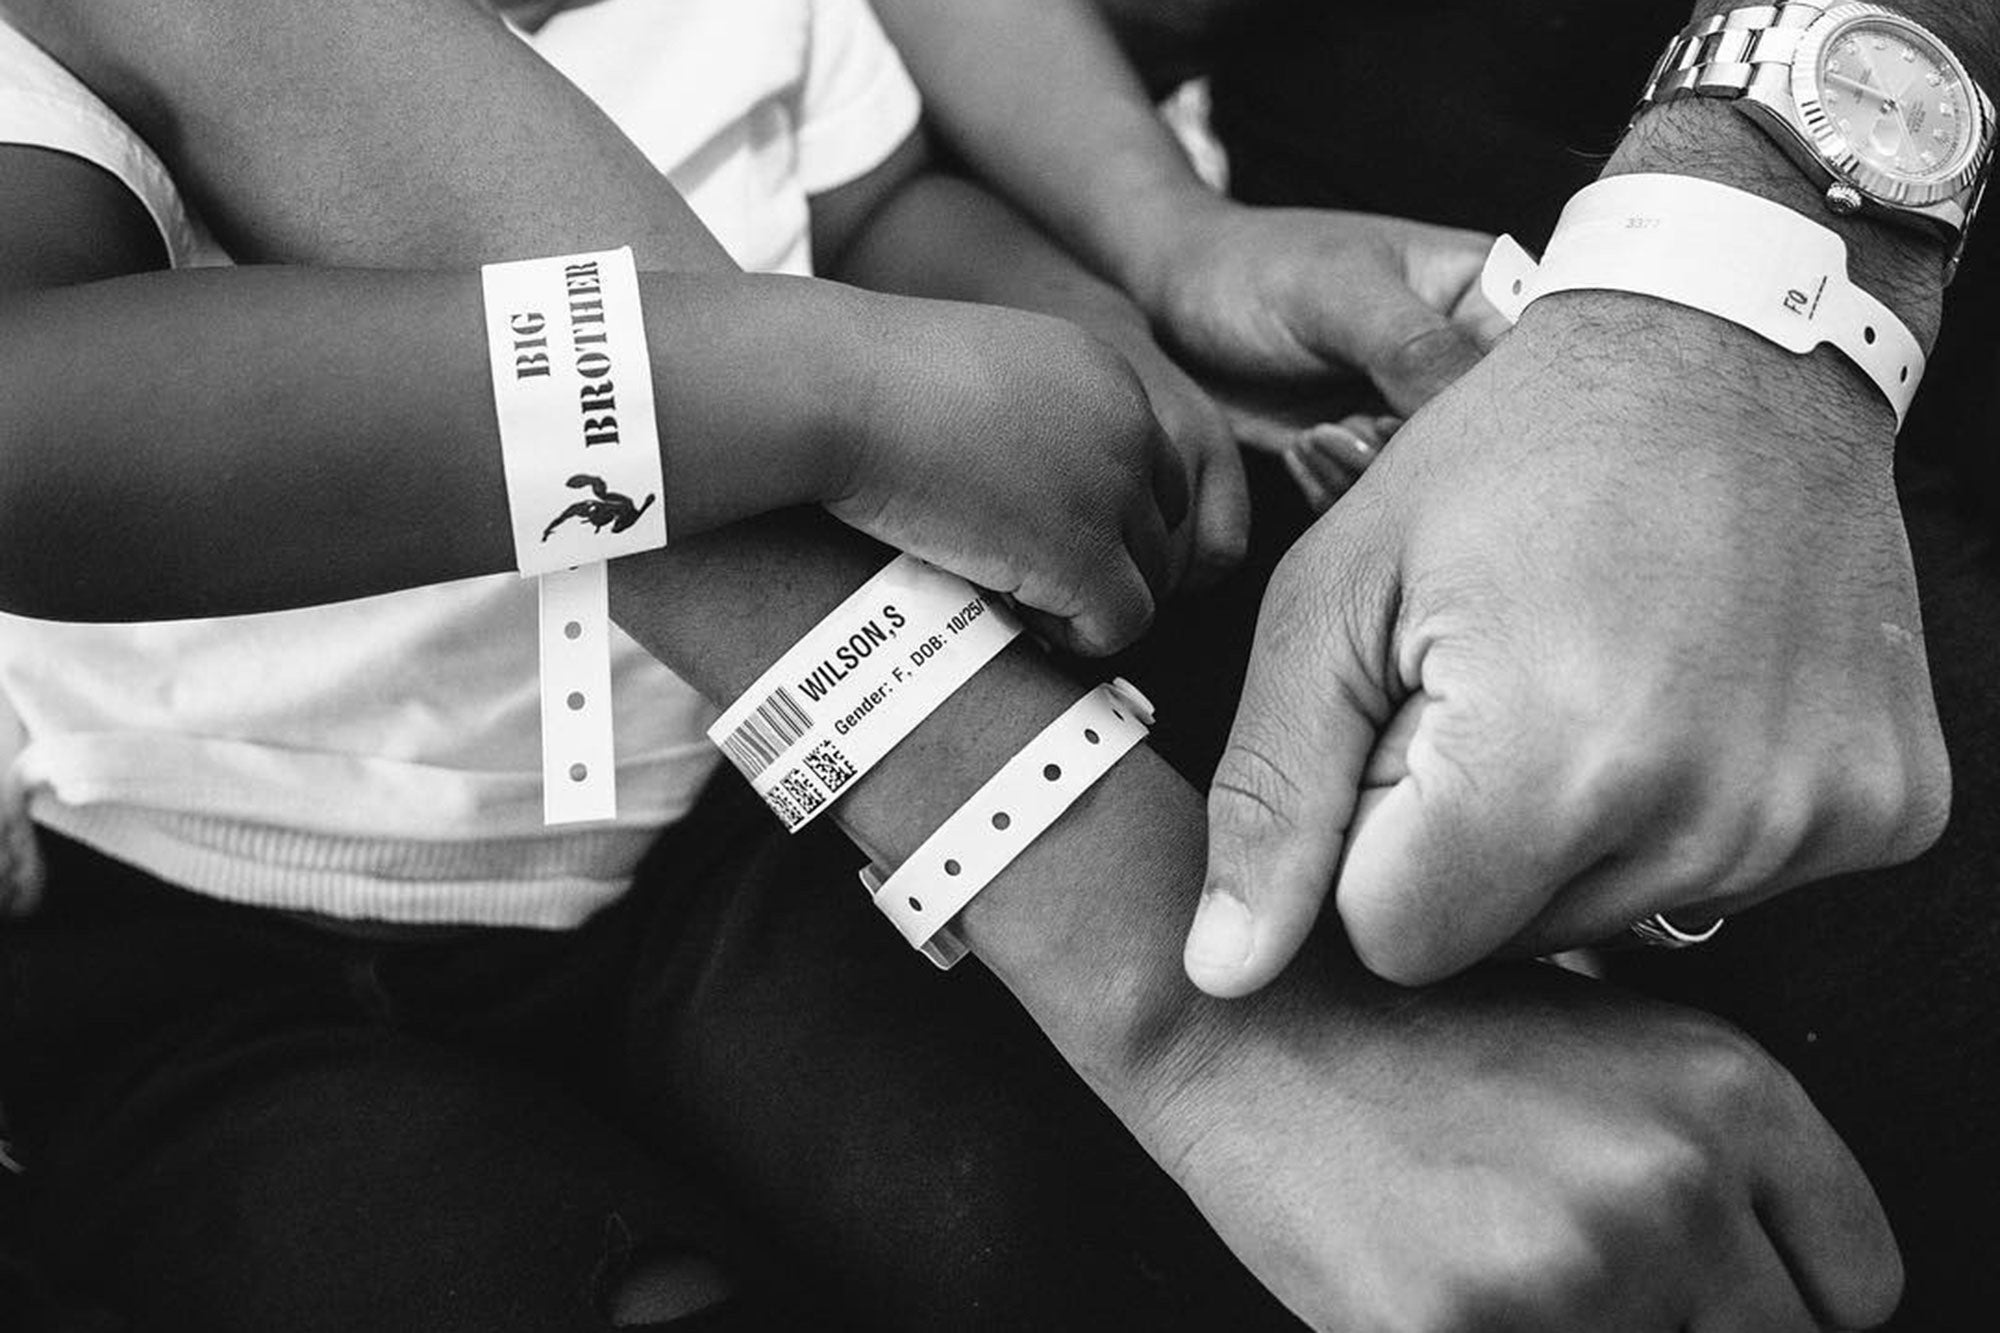 Ciara Shares Photo of Her Family's Hospital Bracelets 1 Week After Welcoming Daughter Sienna